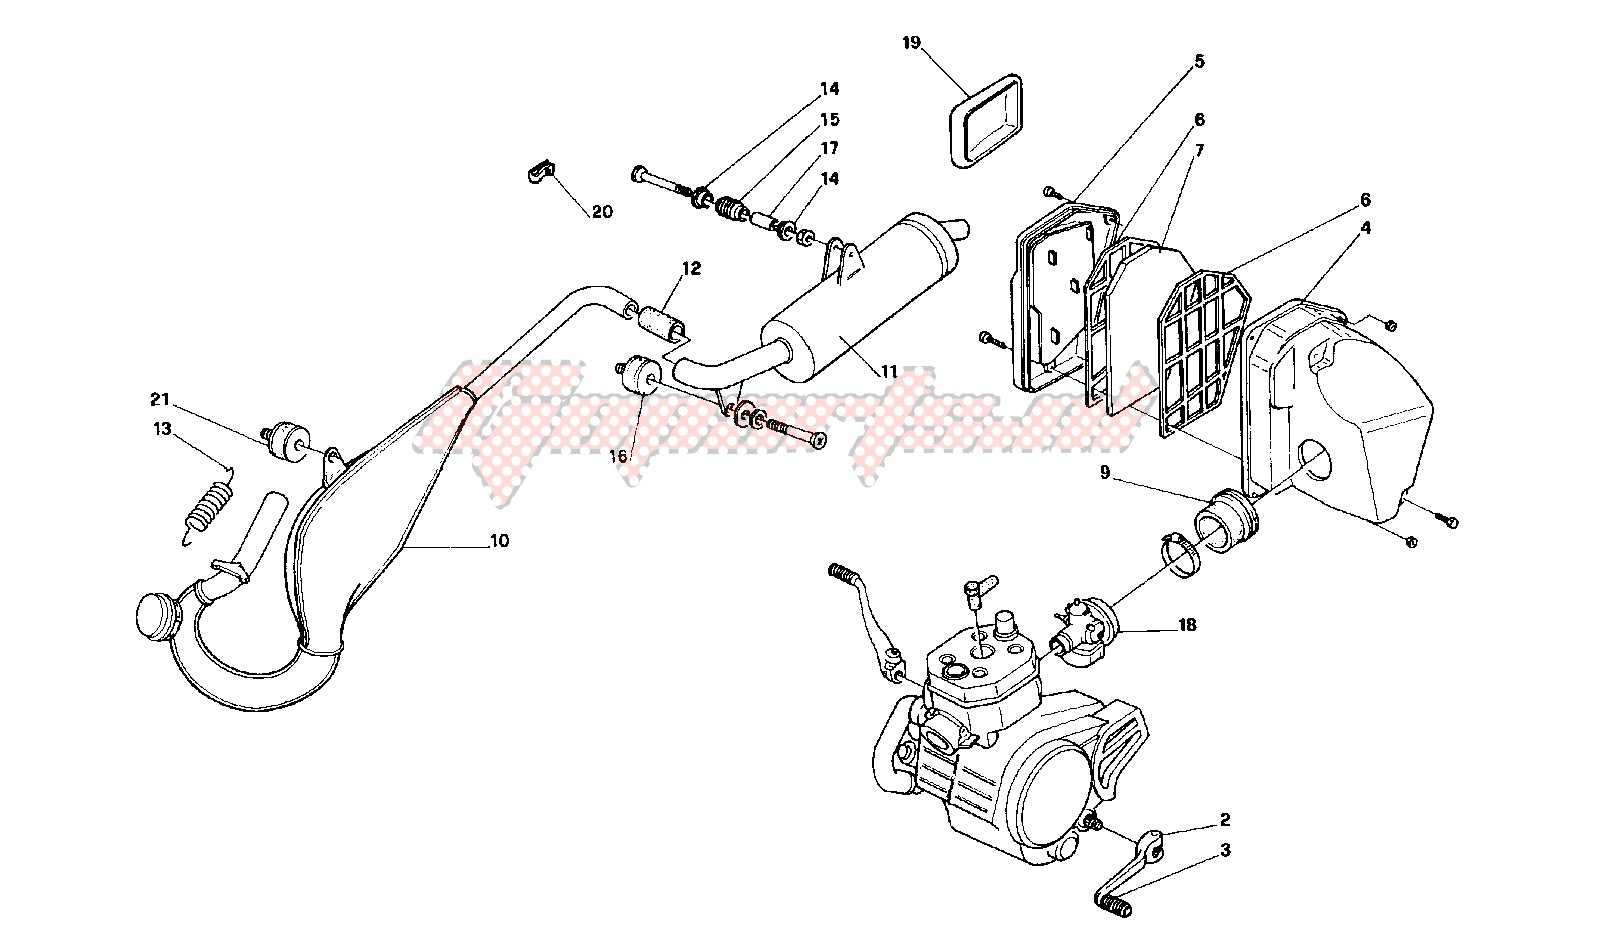 Exhaust system - airfilter image